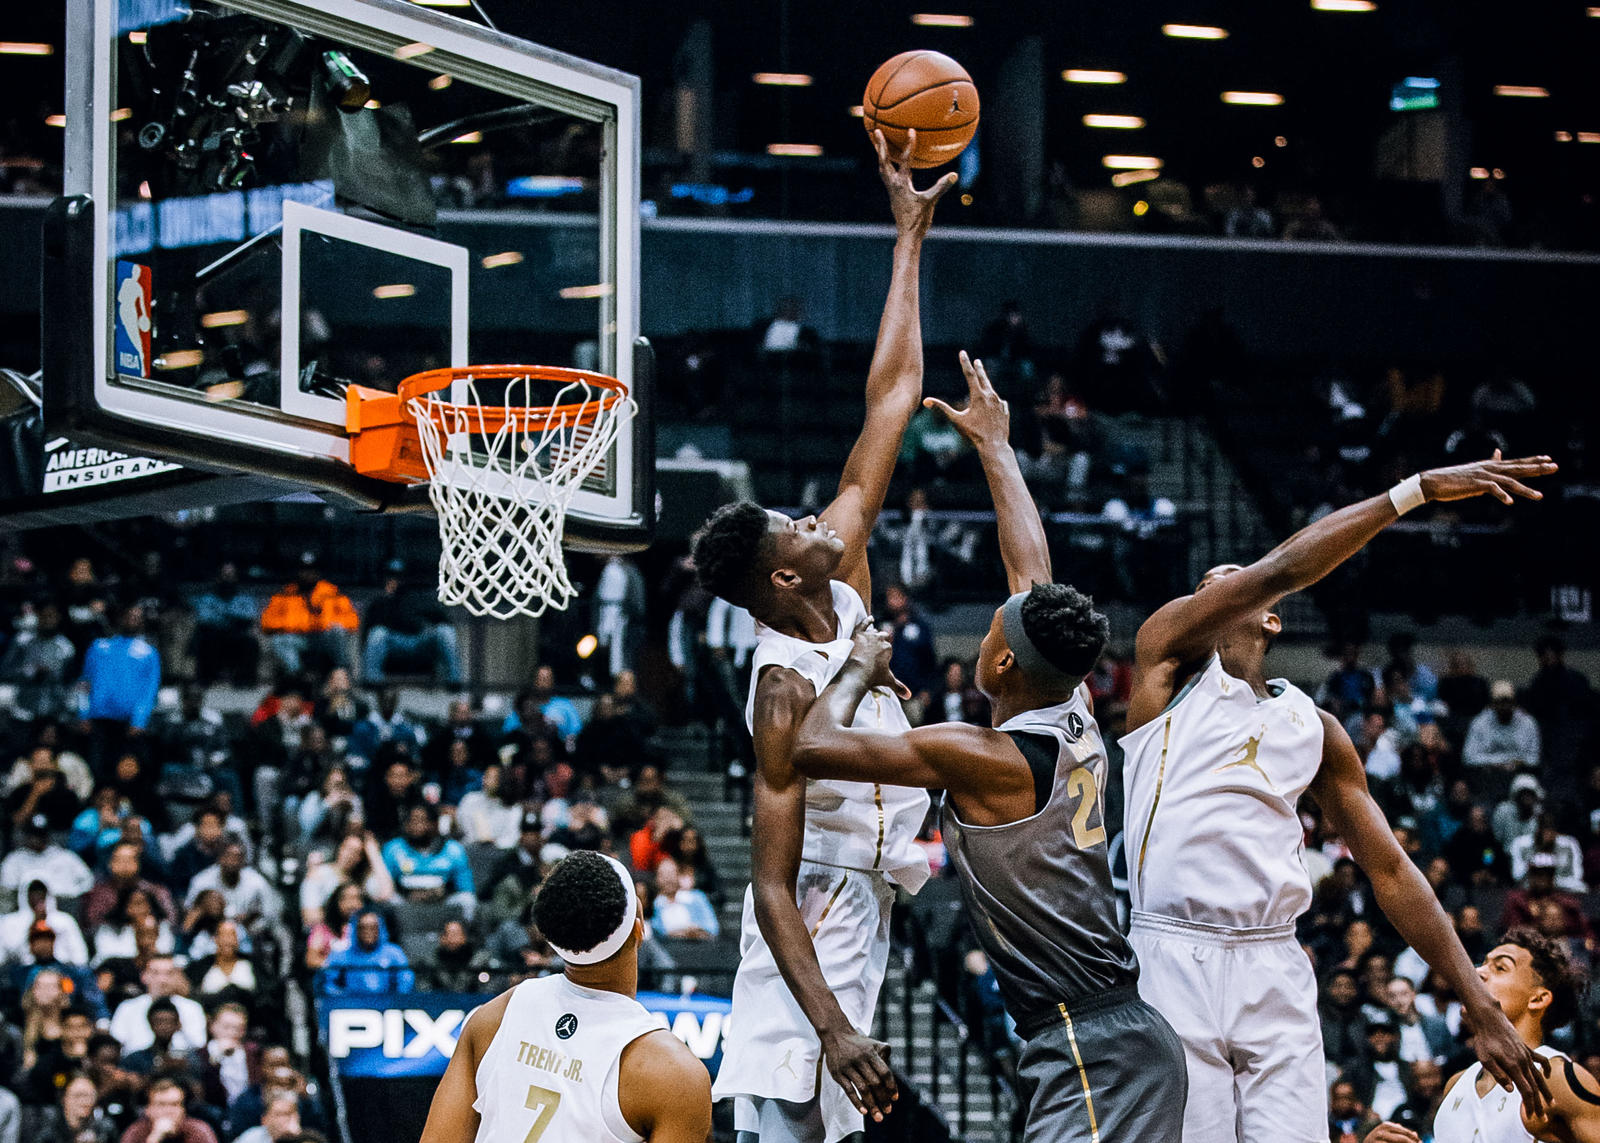 2017 JORDAN BRAND CLASSIC HOSTS NEXT GENERATION OF ELITE TALENT  8